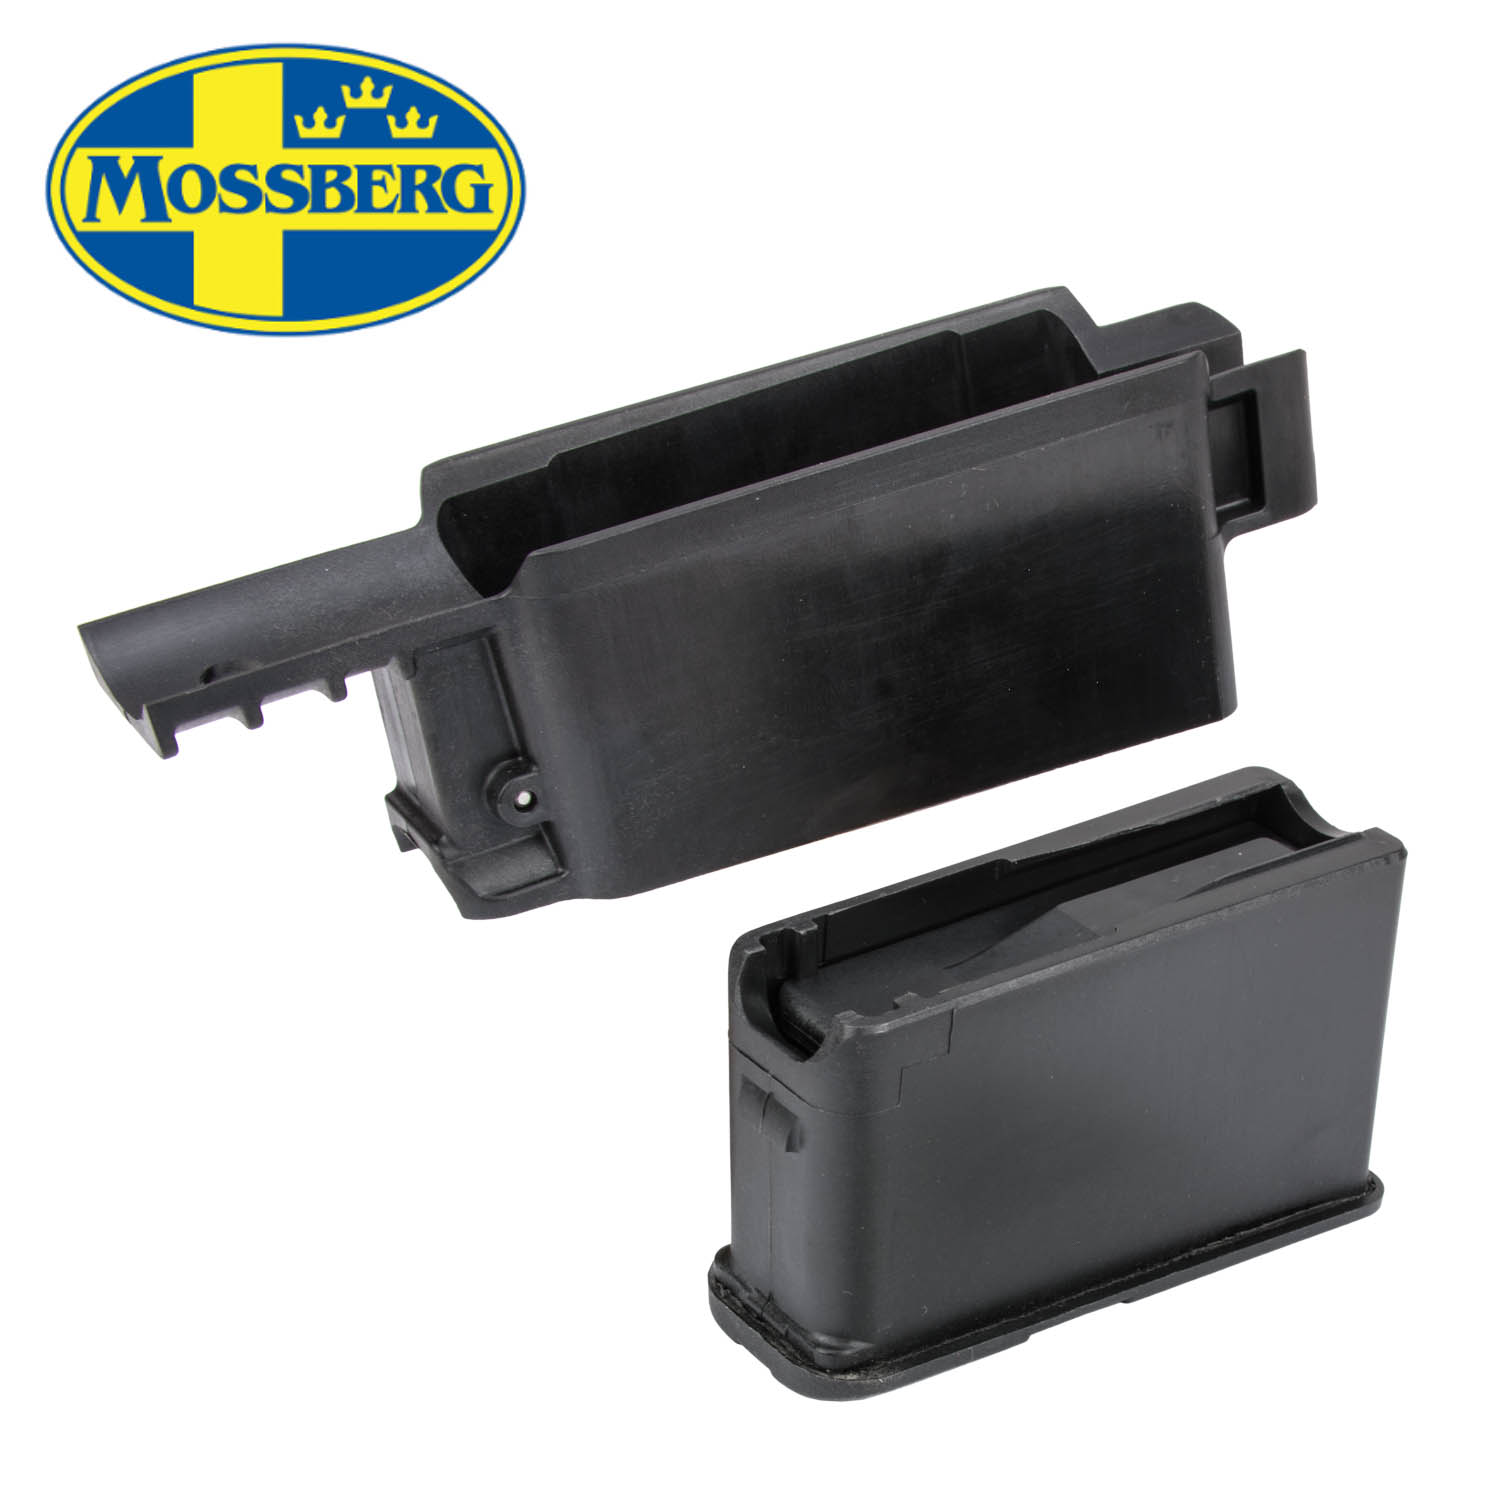 Mossberg Patriot / 4X4 Rifle Magazine and Guide Assembly, Short Action:  Midwest Gun Works